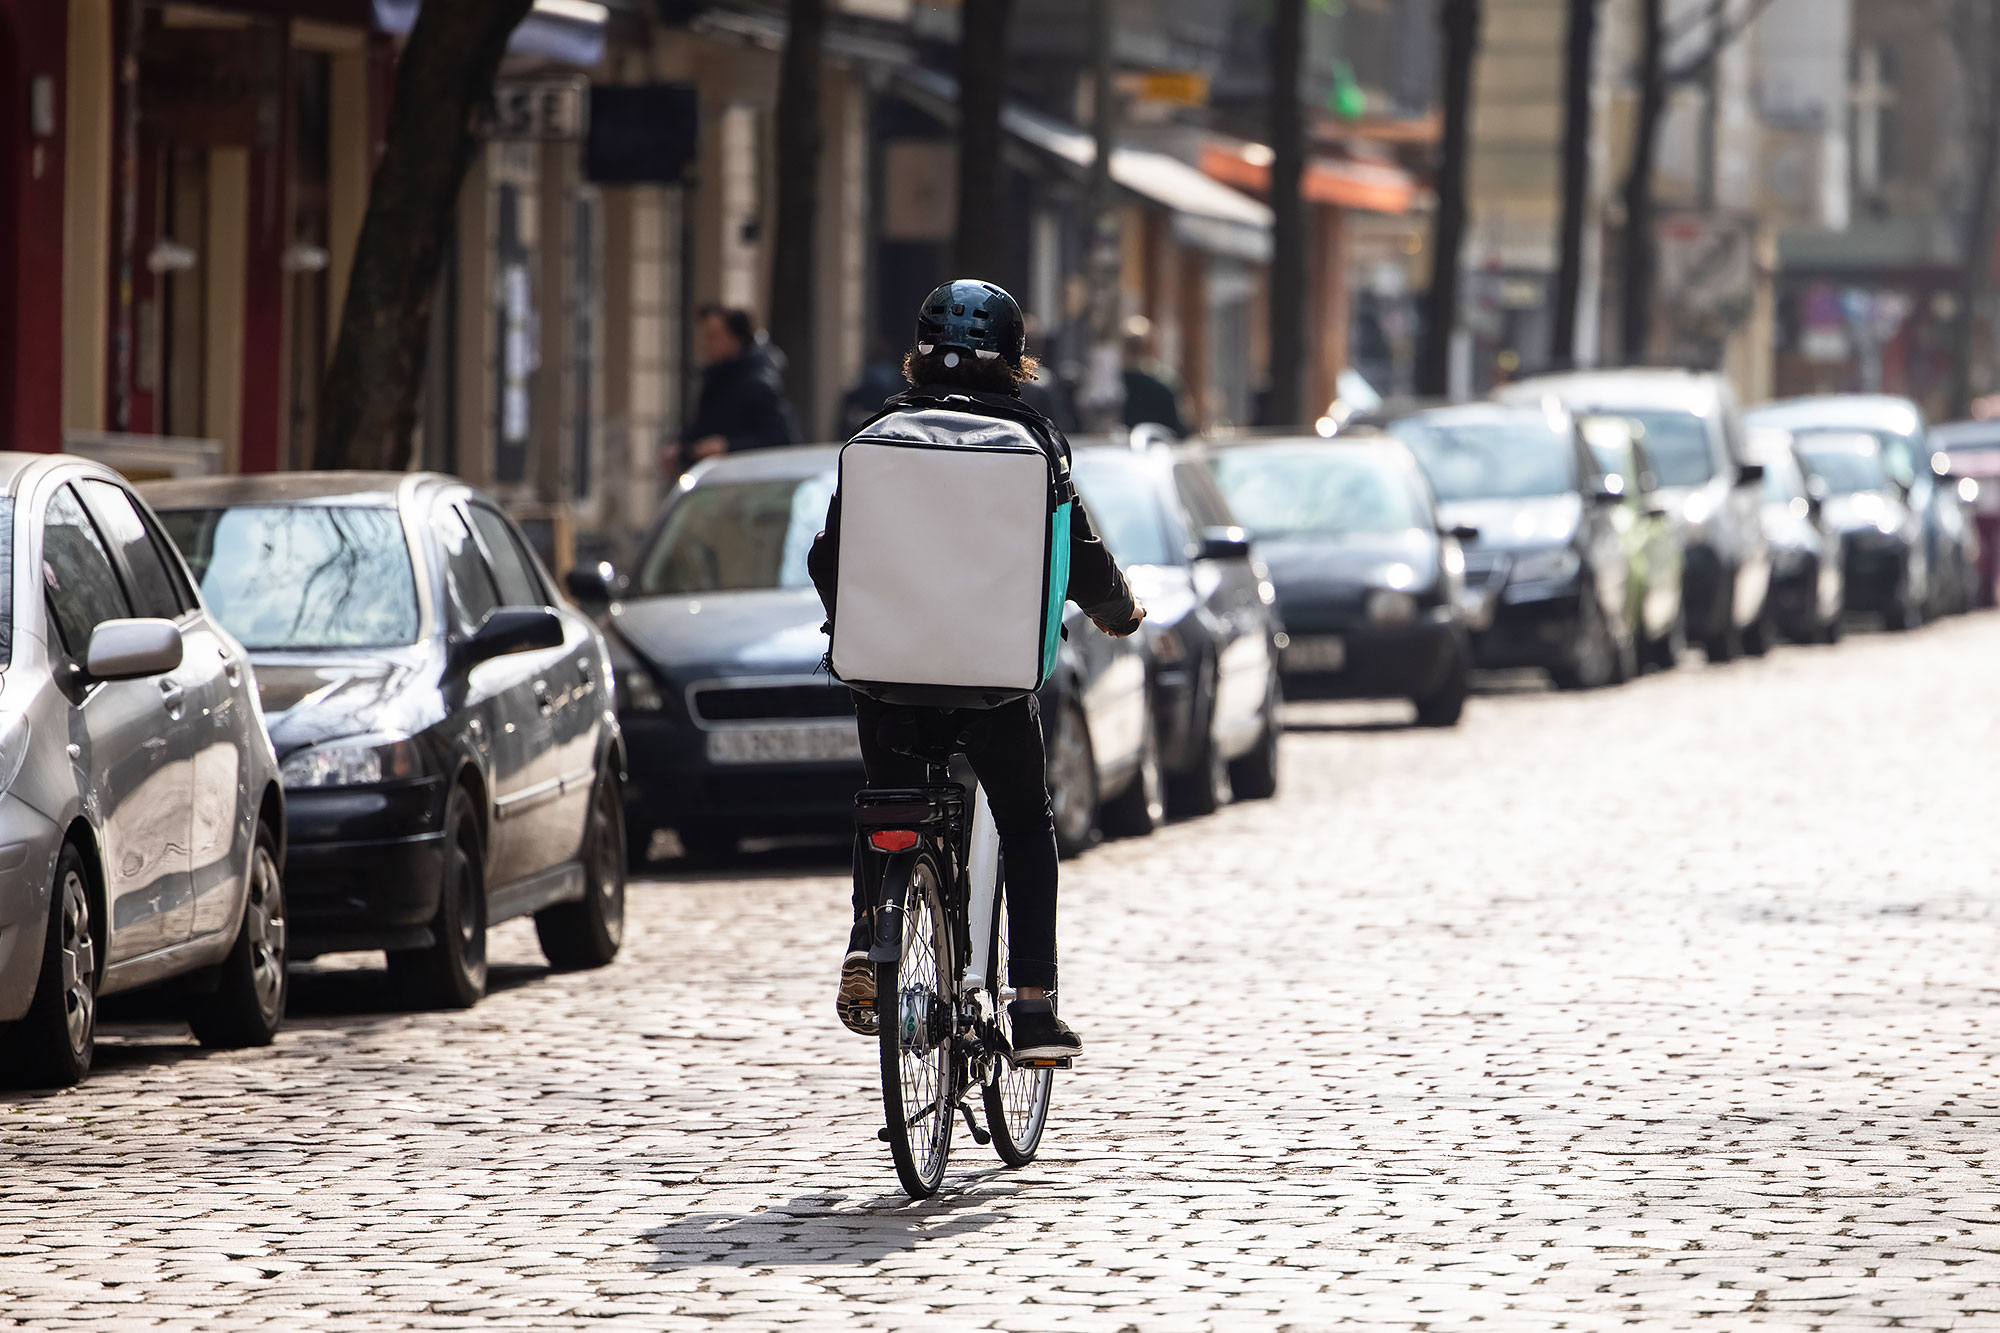 A food delivery person with a thermal backpack riding a bike on the street